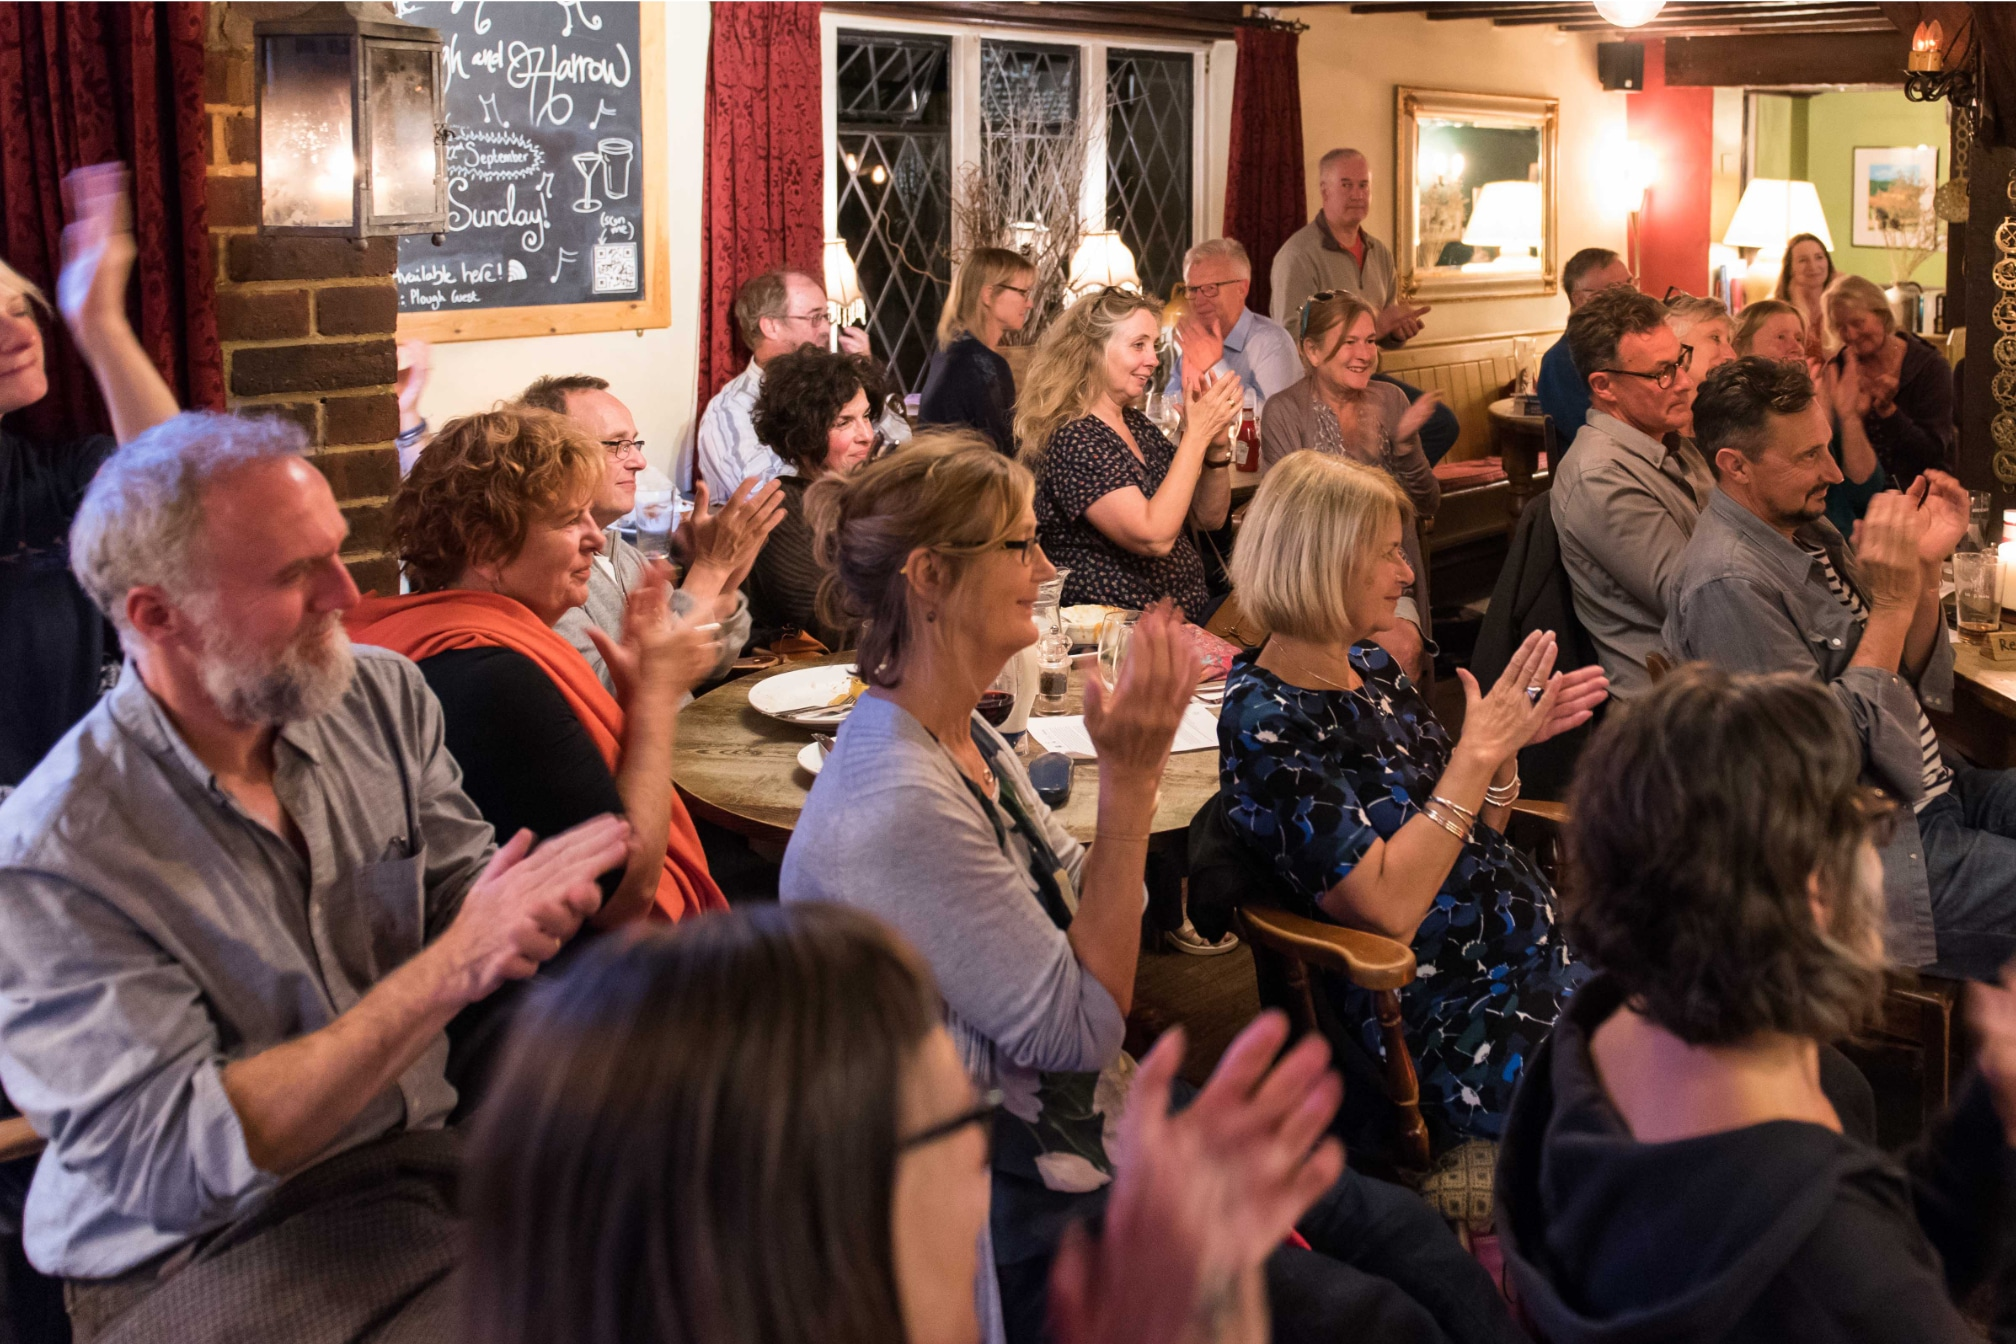 People in a pub applauding